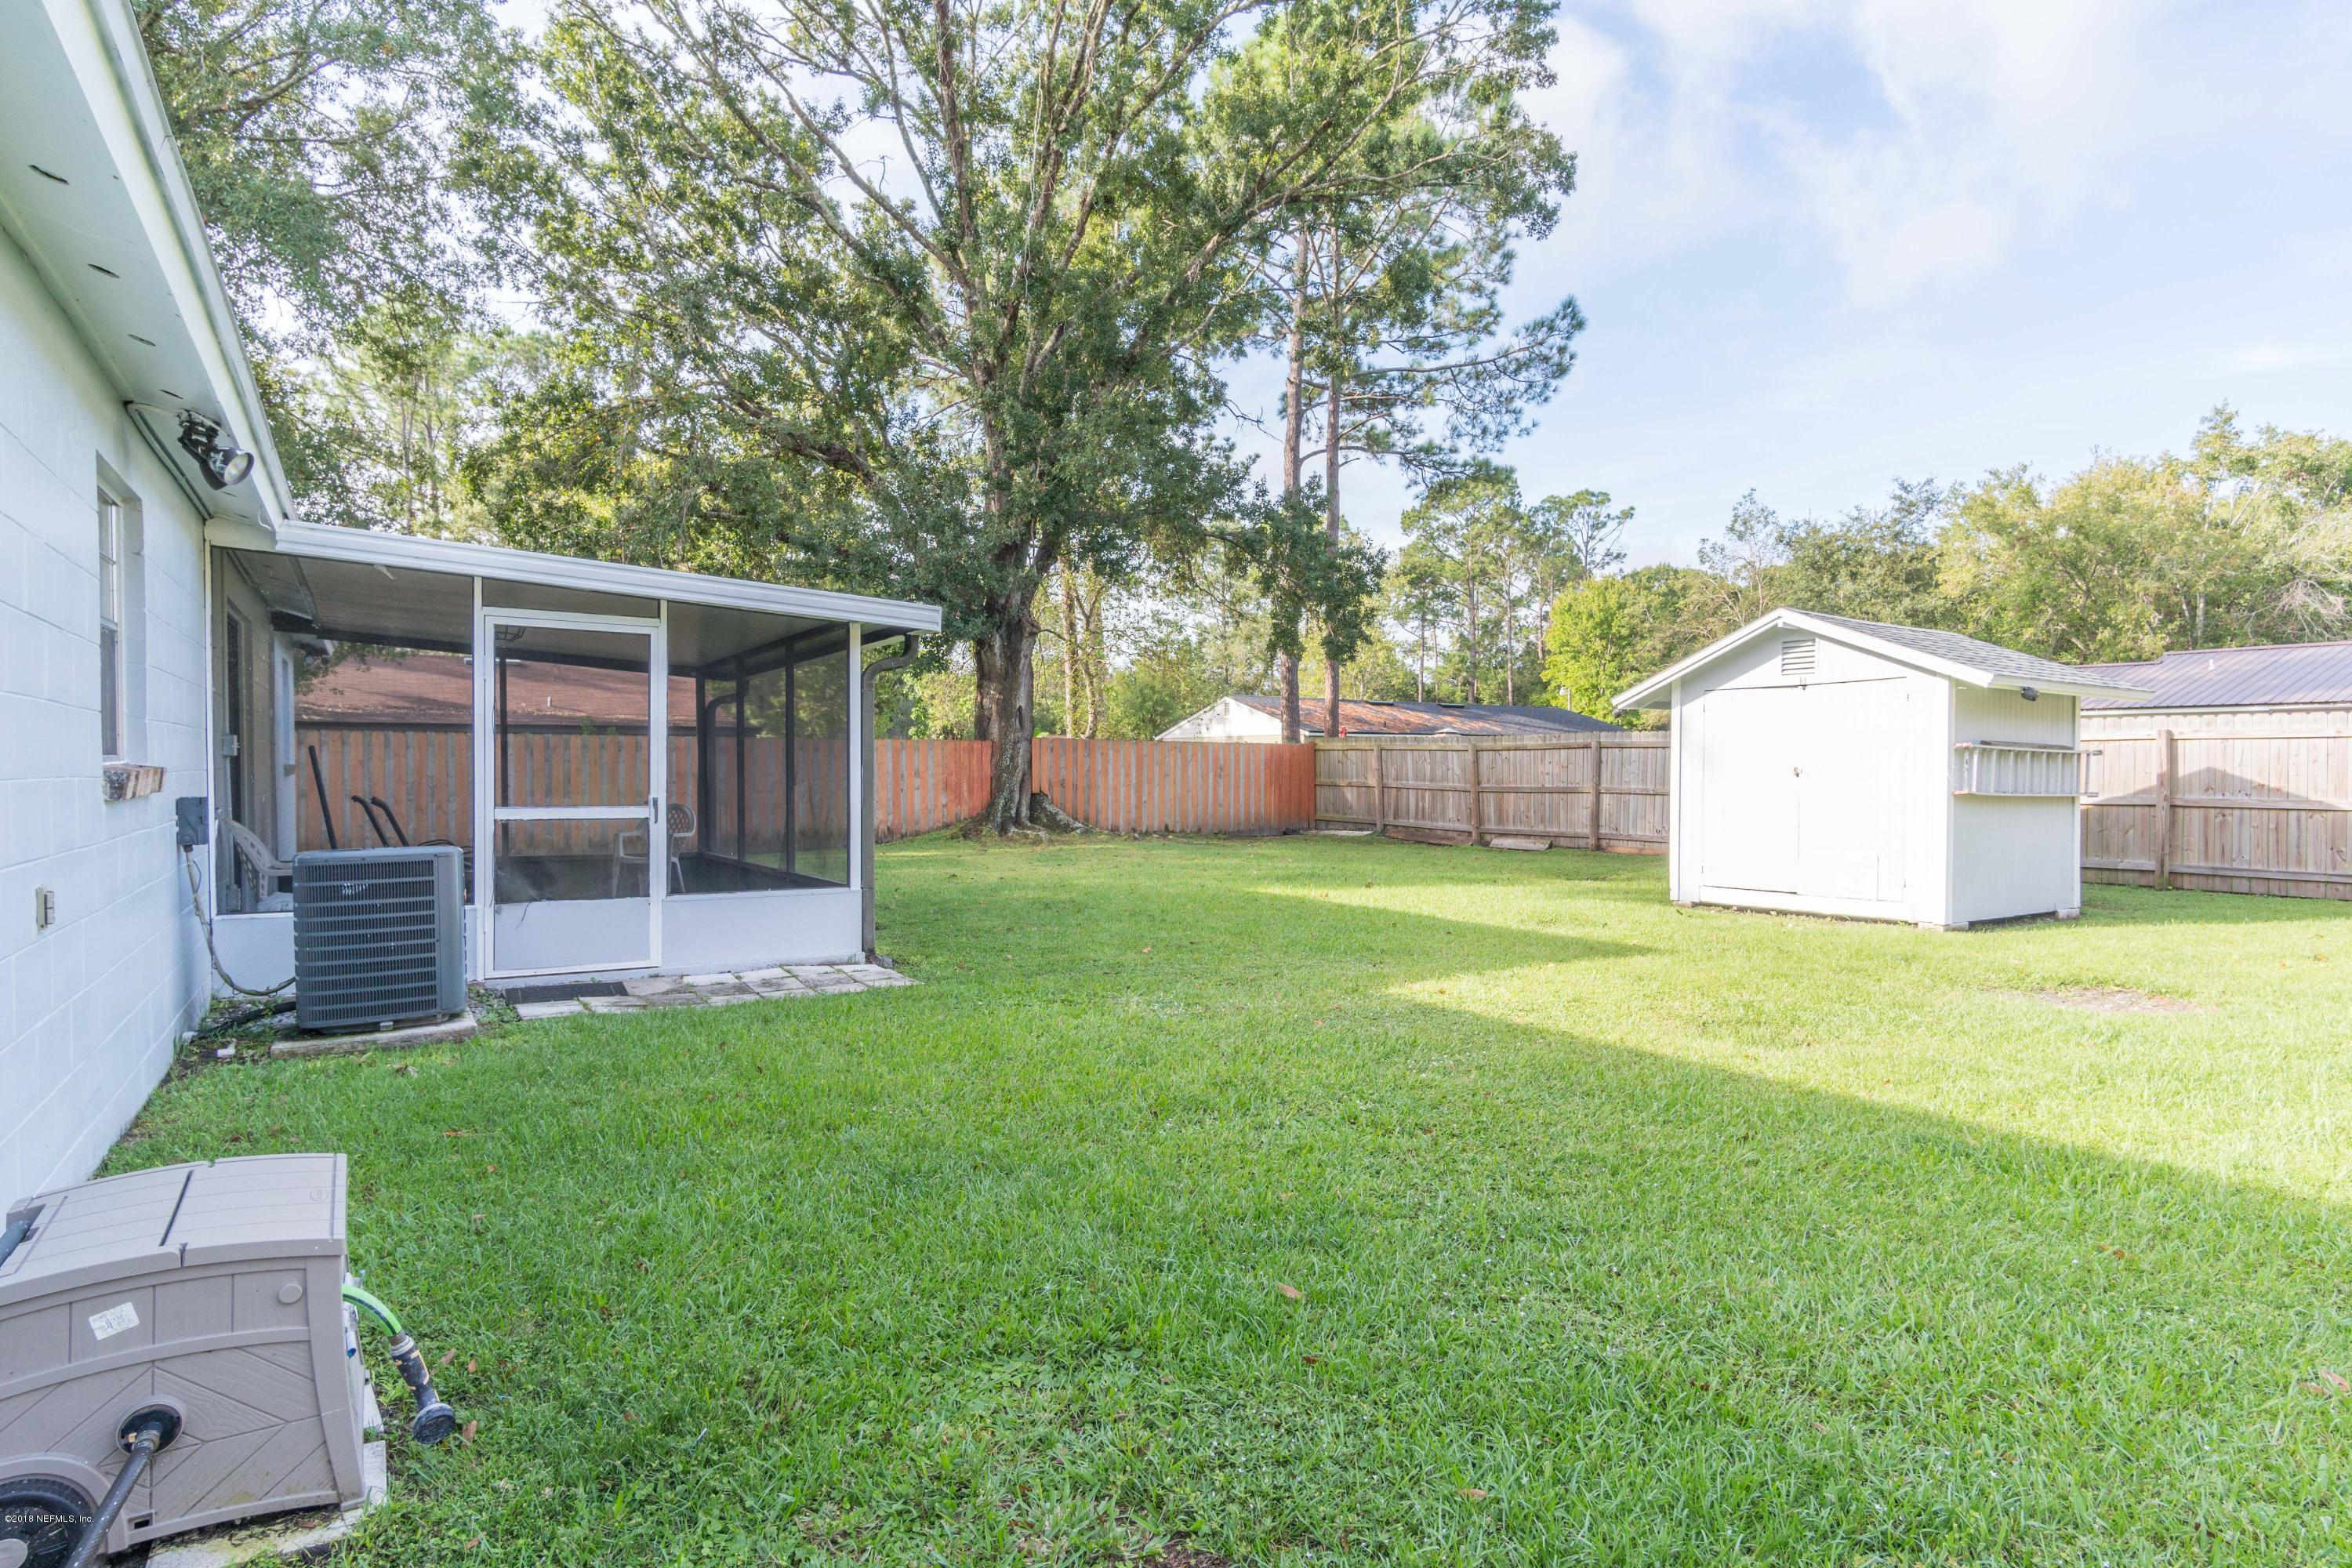 1648 ANNE, MIDDLEBURG, FLORIDA 32068, 3 Bedrooms Bedrooms, ,2 BathroomsBathrooms,Residential - single family,For sale,ANNE,961950